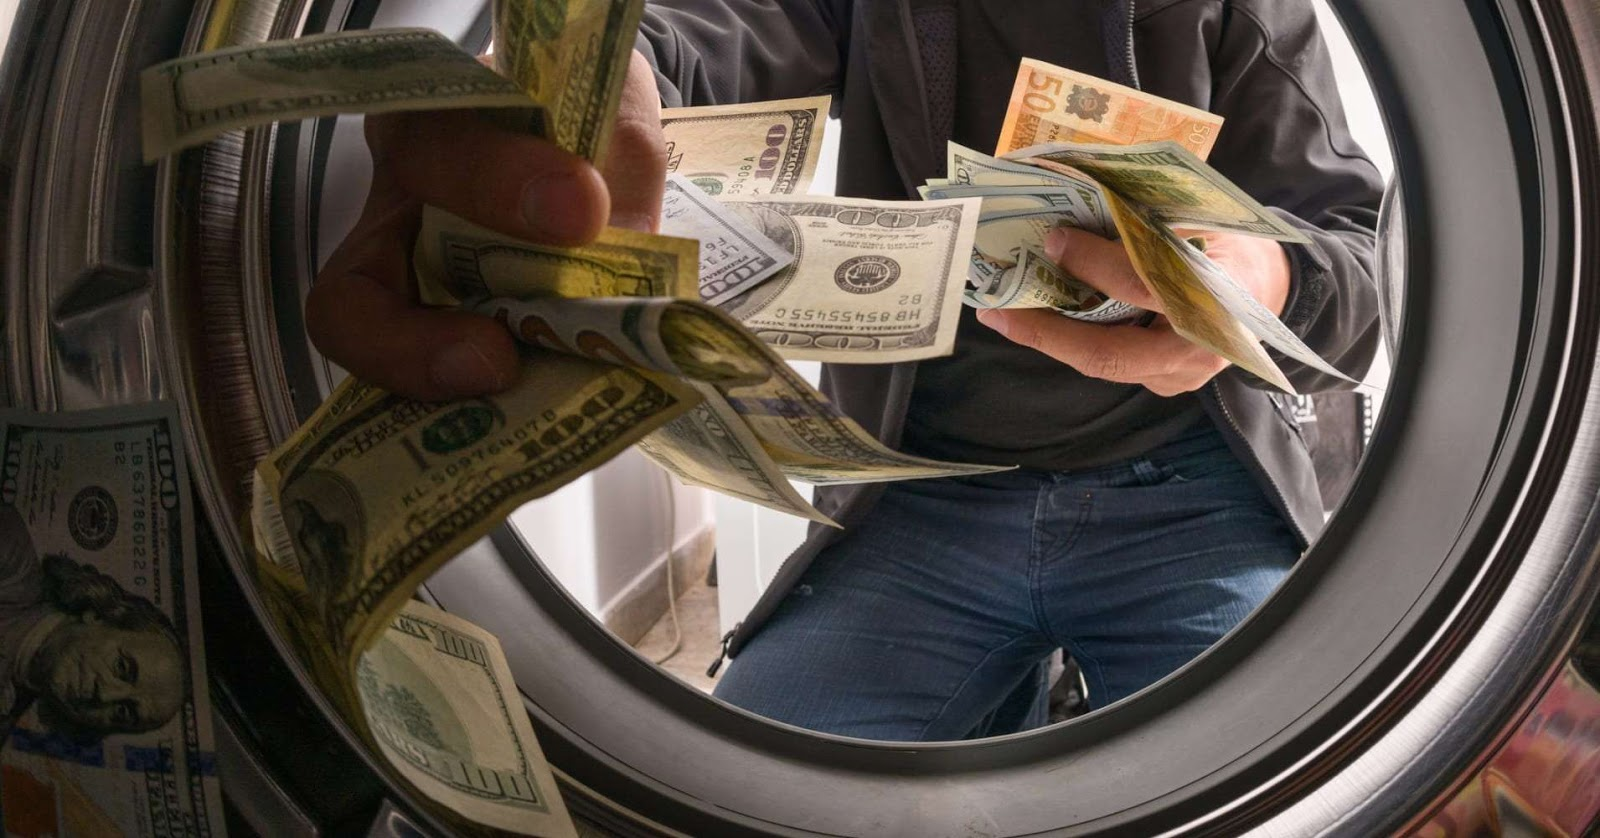 Don't fall prey to these 3 common money laundering scams